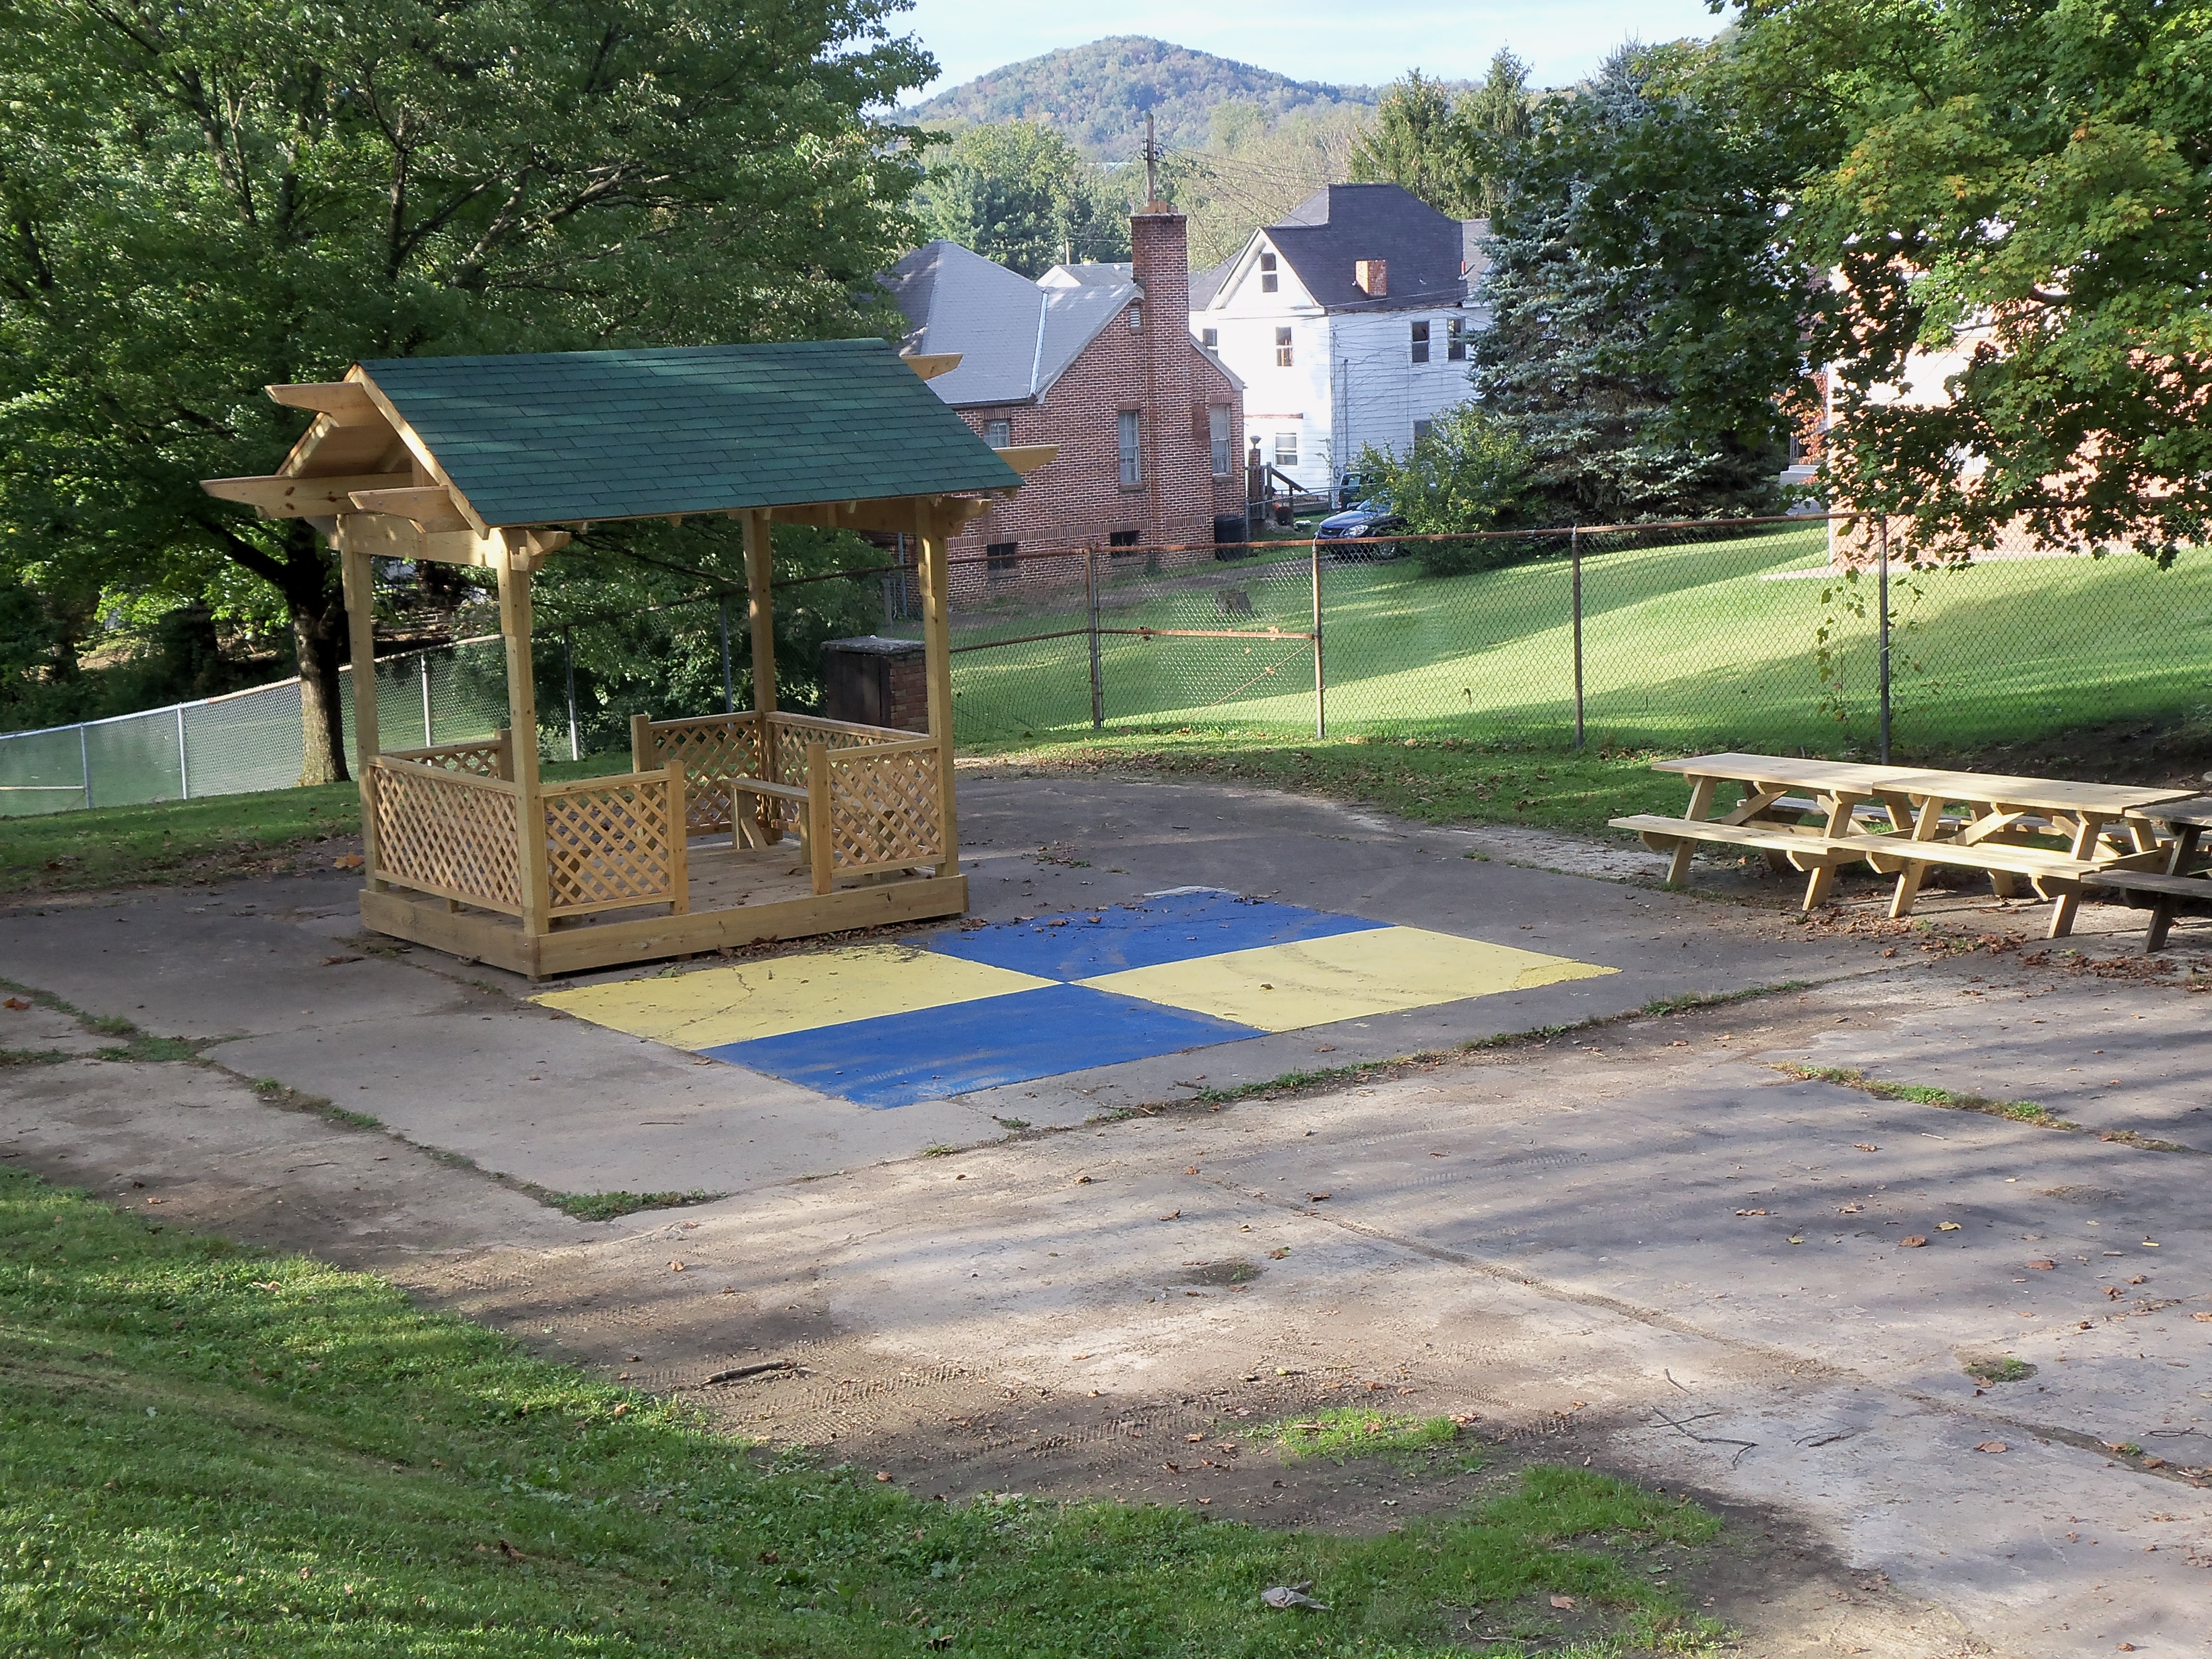 4-Square Game Next to Little Shelter at Park